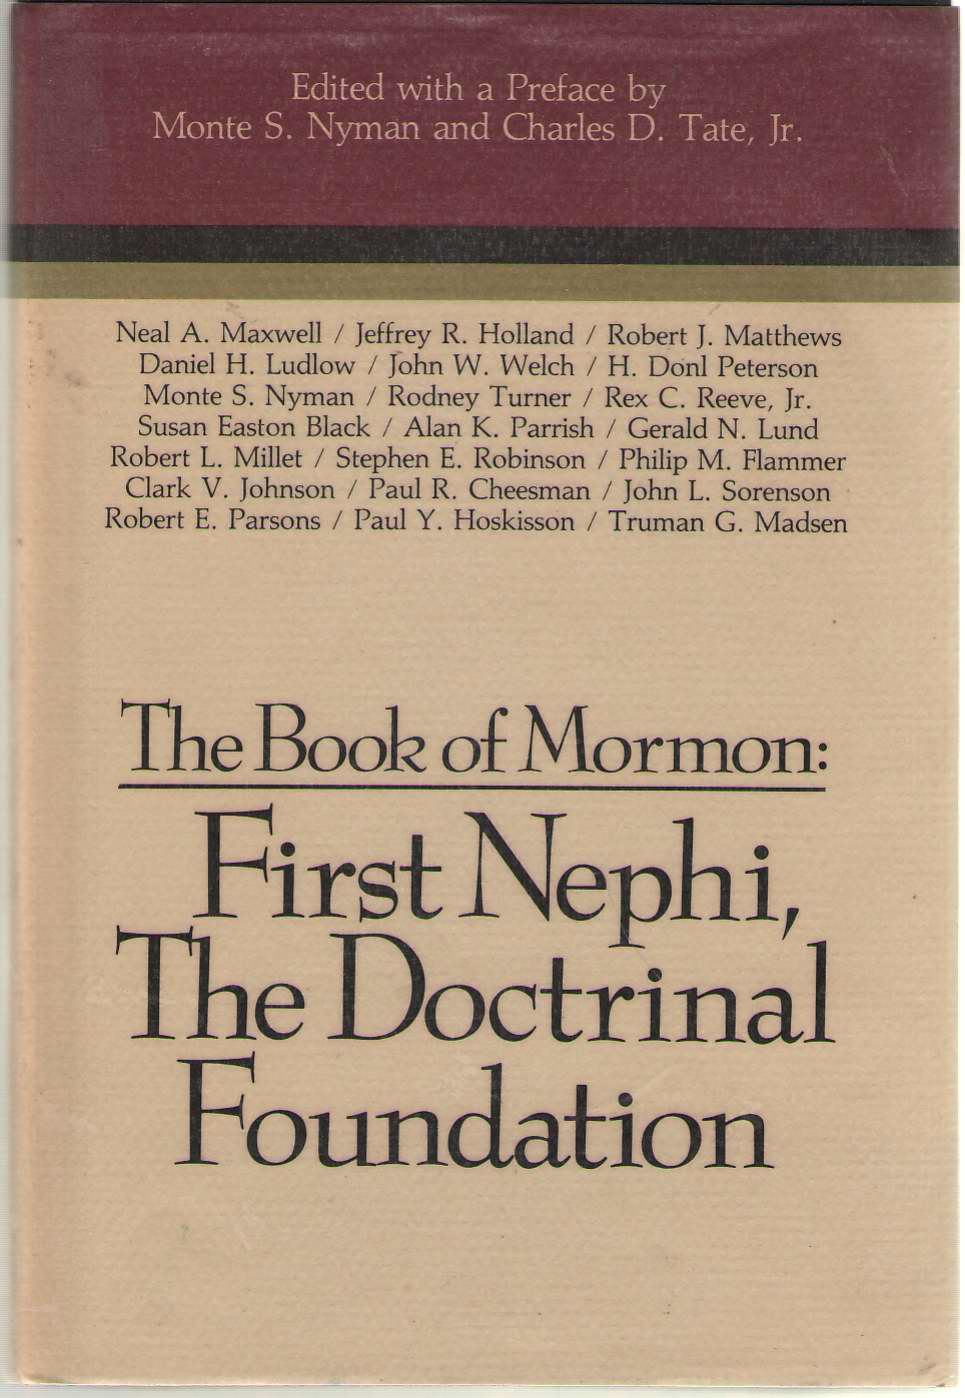 The Book Of Mormon: First Nephi, The Doctrinal Foundation Papers from the Second Annual Book of Mormon Symposium, Nyman, Monte S. (editor) , & Tate, Charles D. (editor)